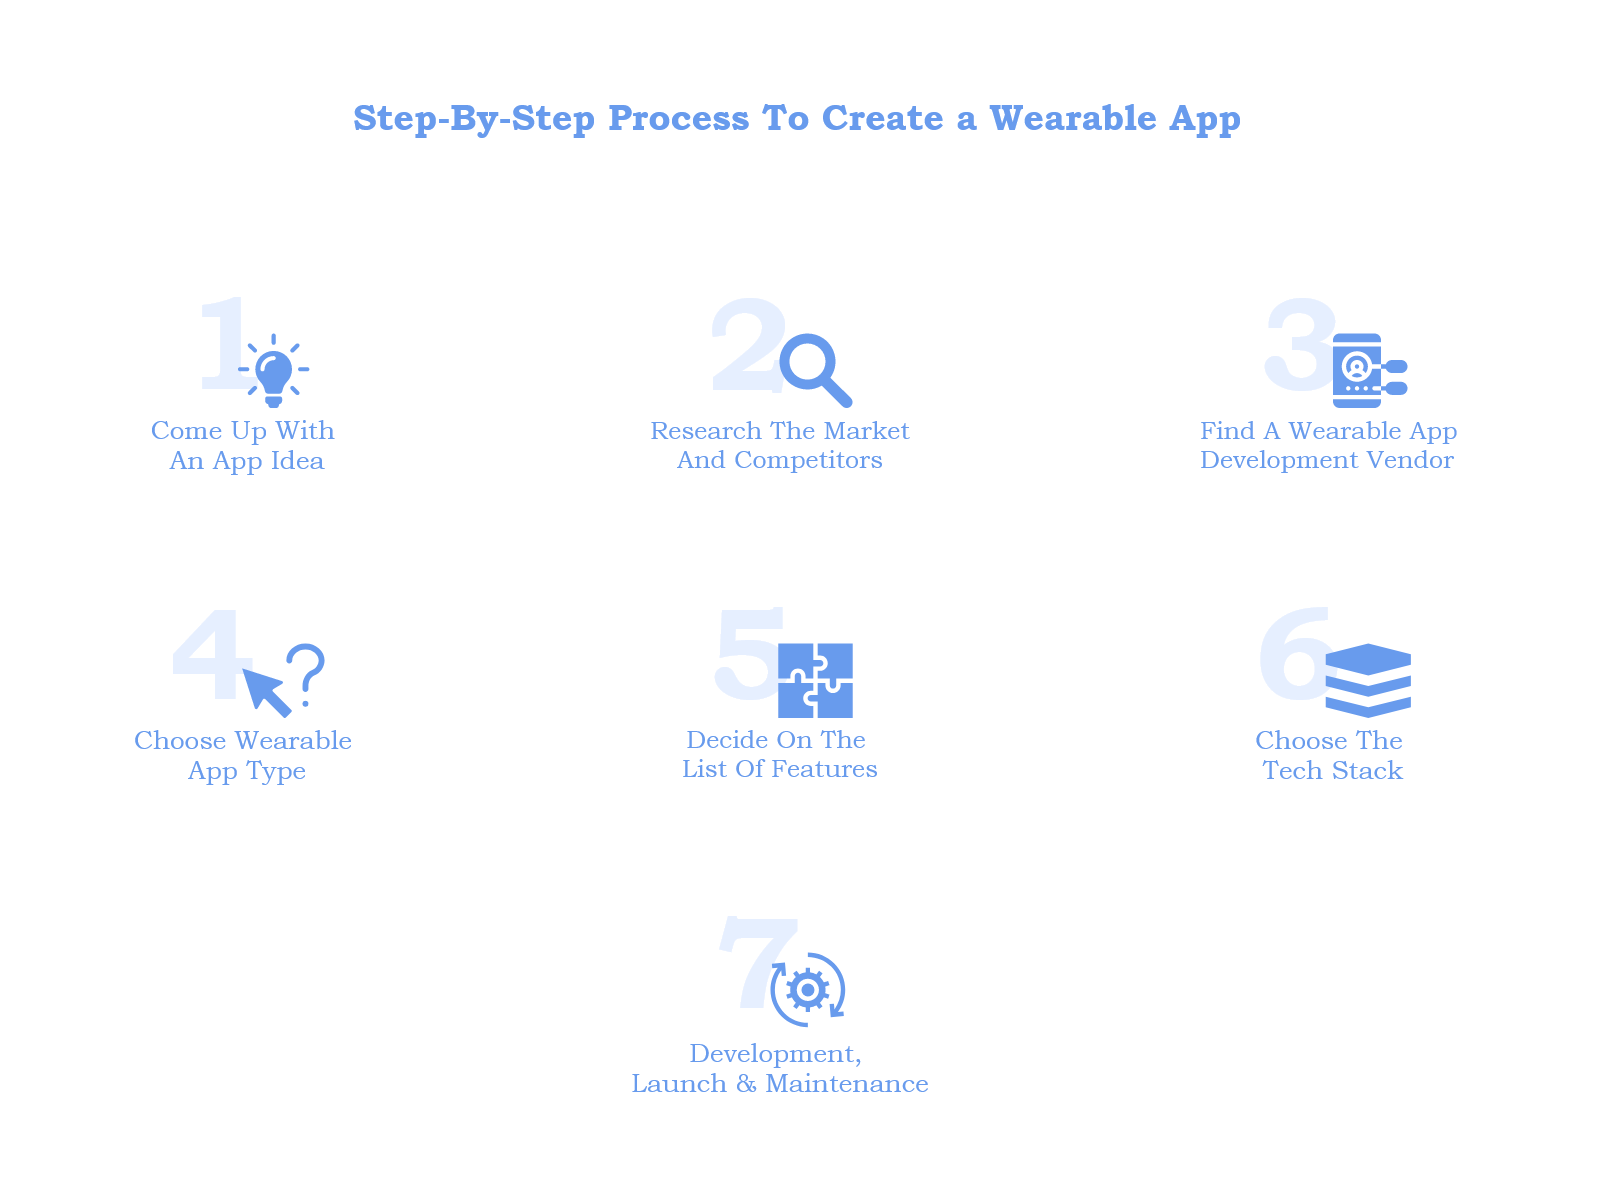 Step-by-Step Process to Create a Wearable App